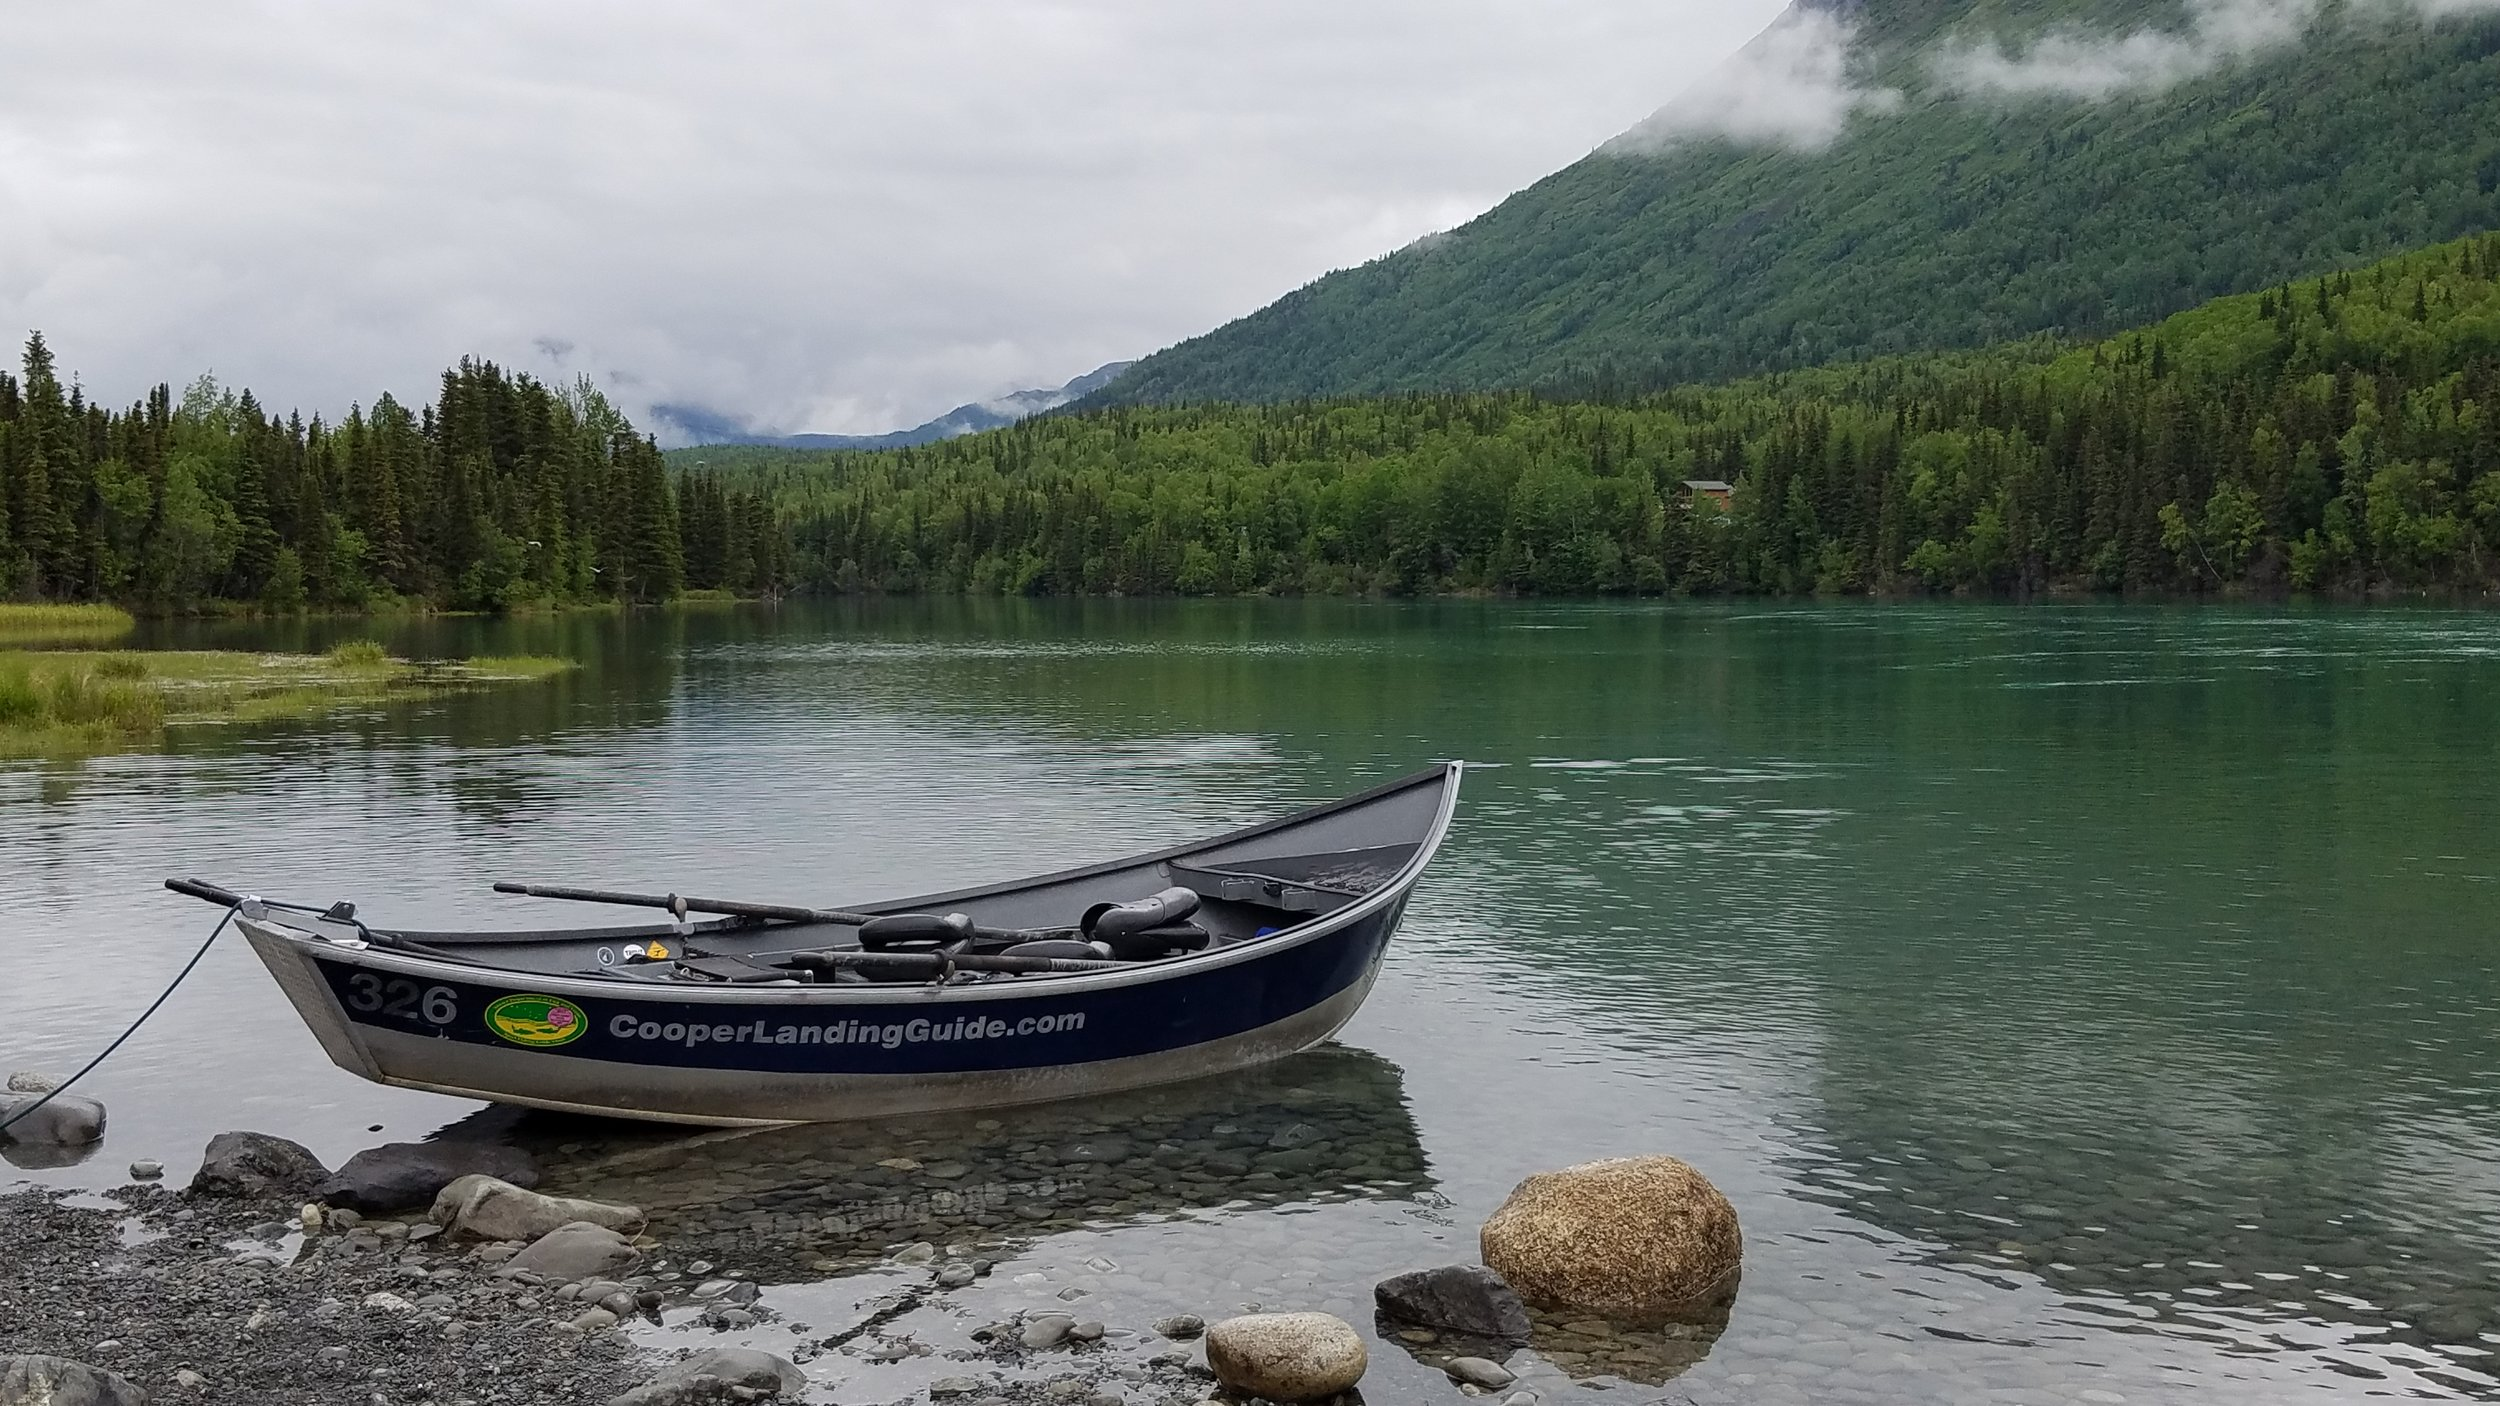 The boat launch in    Cooper Landing    at the very beginning of the    Kenai River   . The    upper Kenai River    winds through a stunning mountain setting with    world-class fishing    and ample wildlife viewing opportunities.